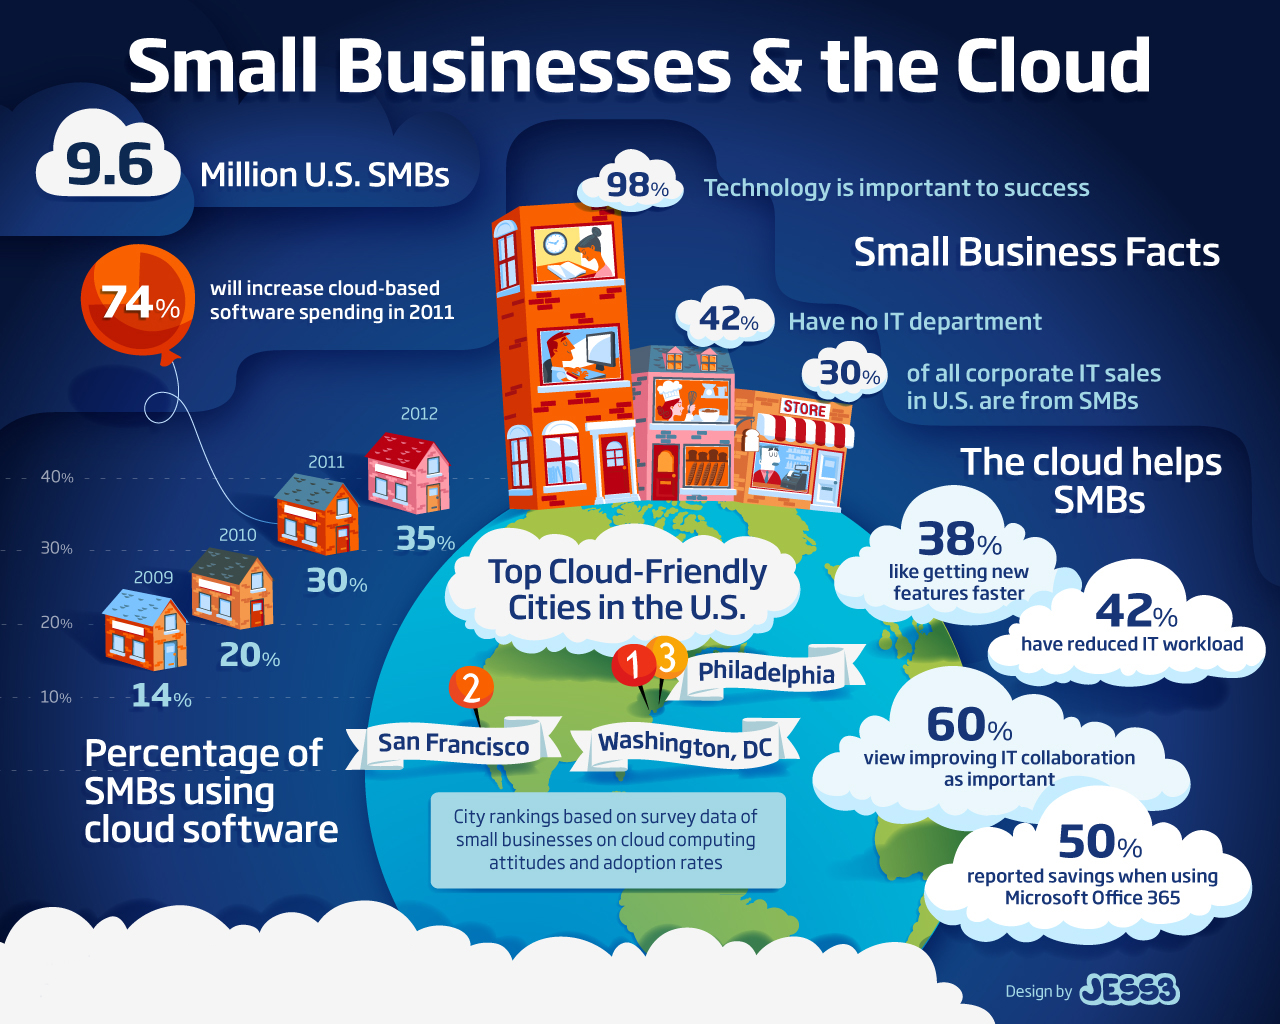 Opportunities-and-Risks-of-Cloud-Computing-for-Small-Business